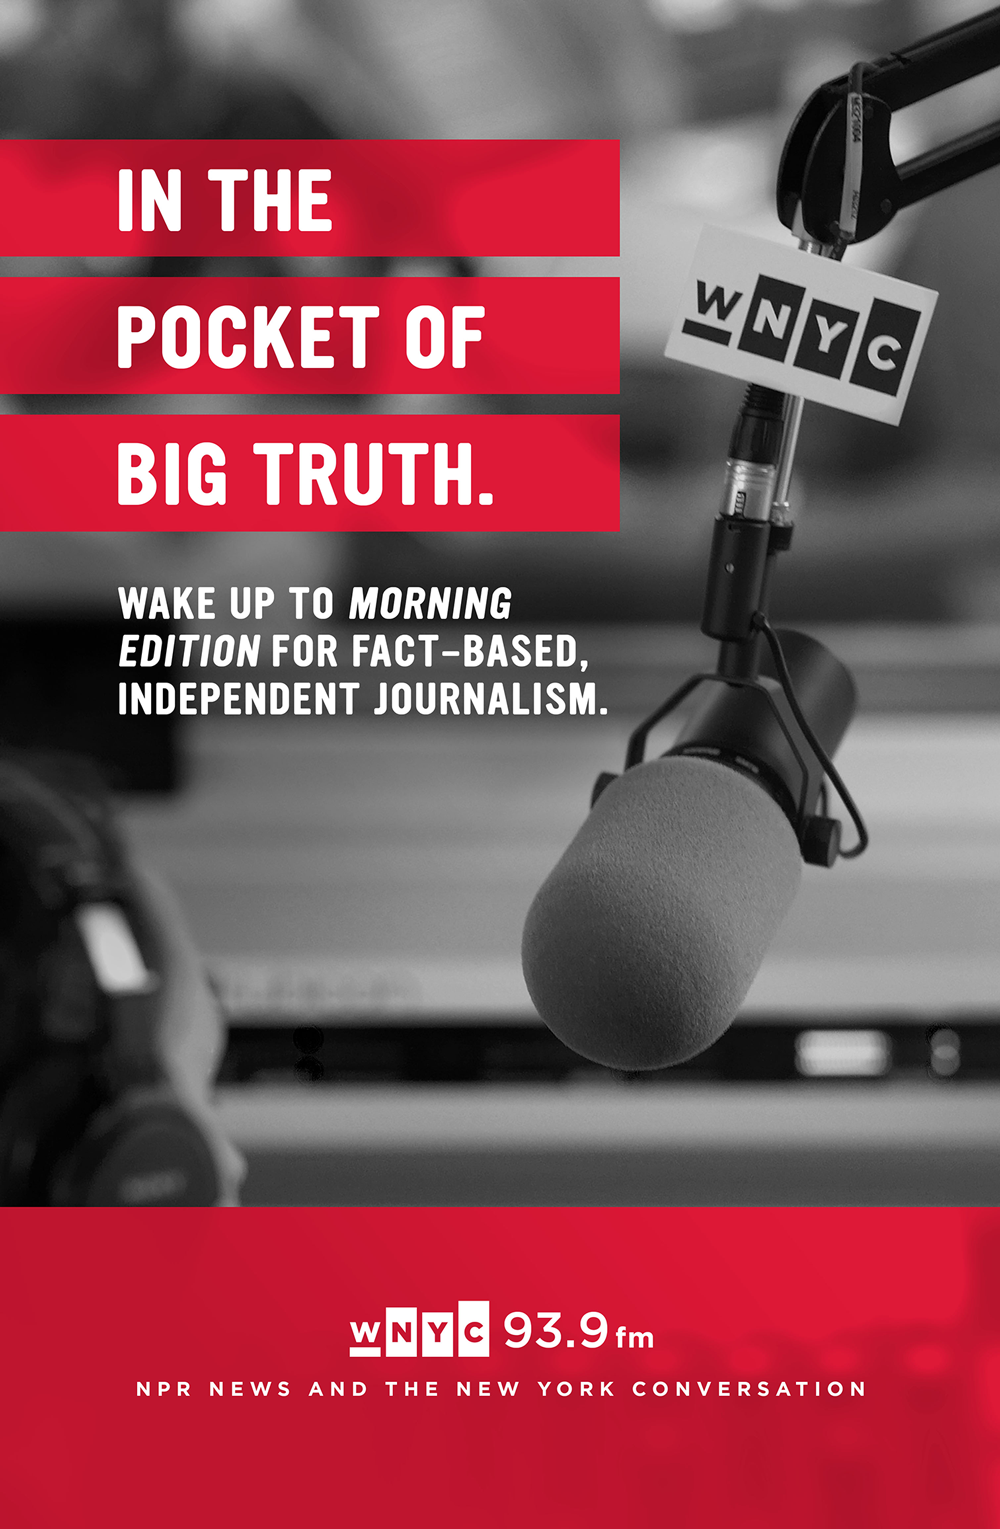 WNYC_Campaign_BigTruth.png